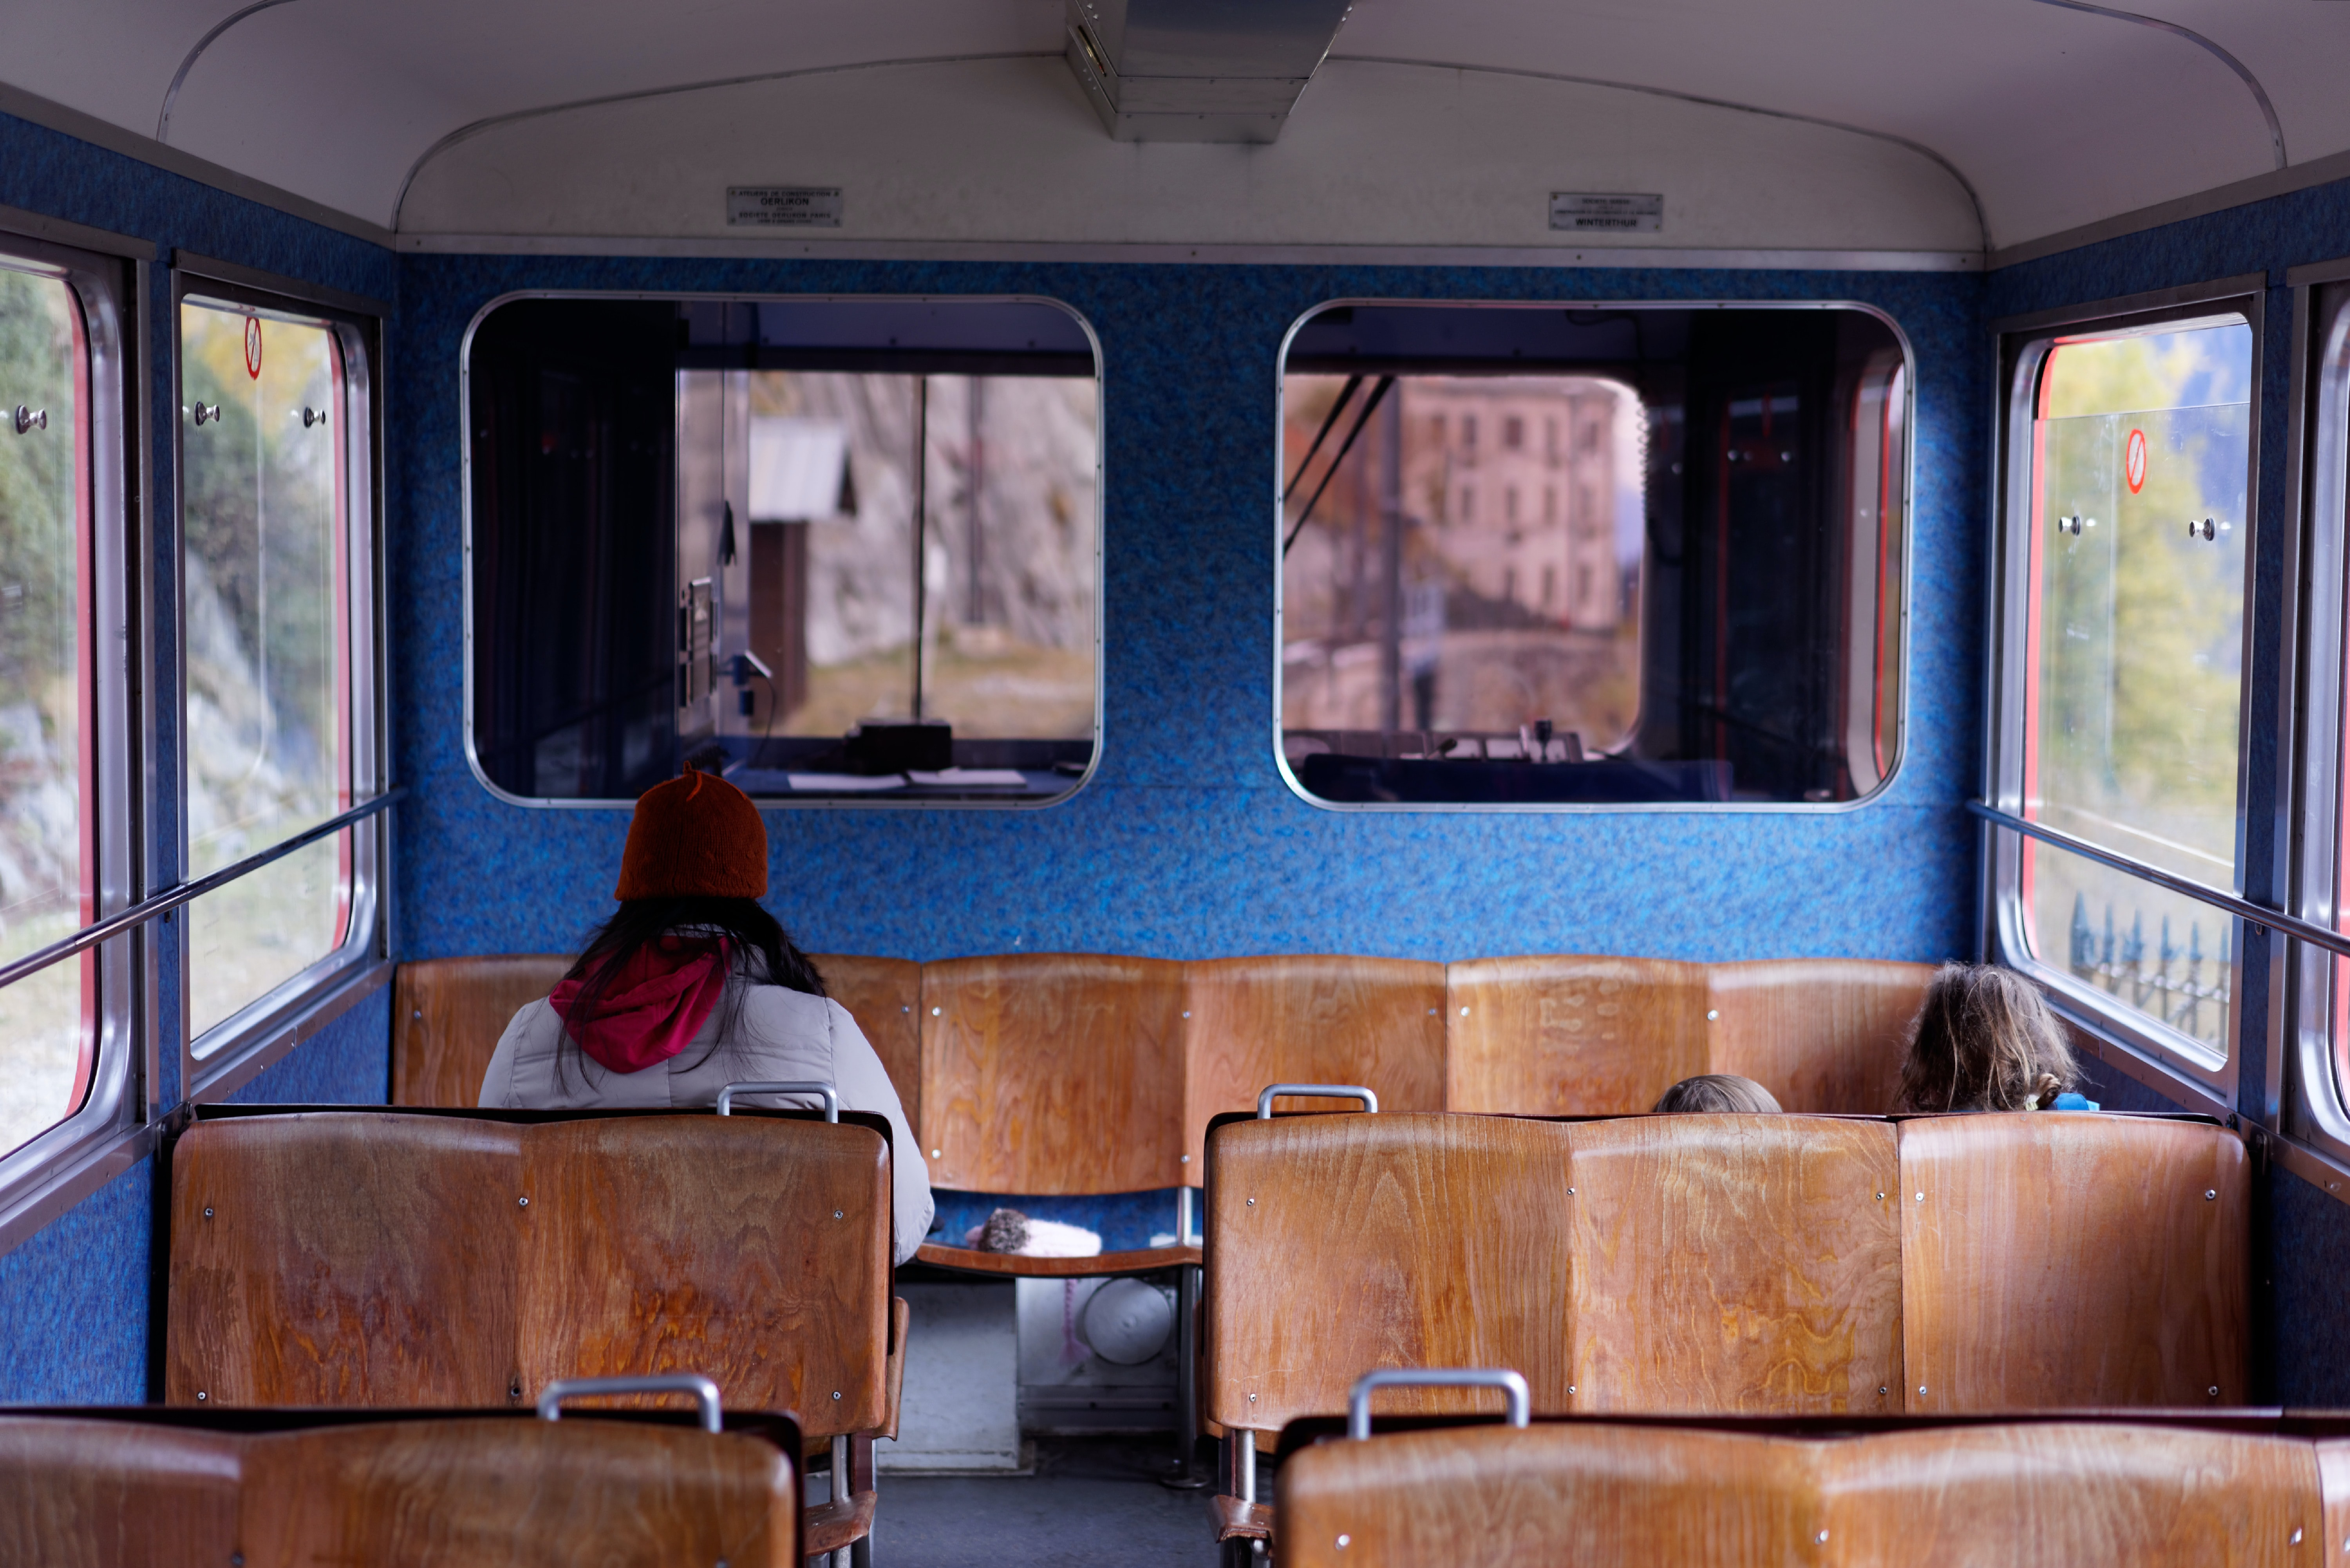 The inside of a train with wooden seats